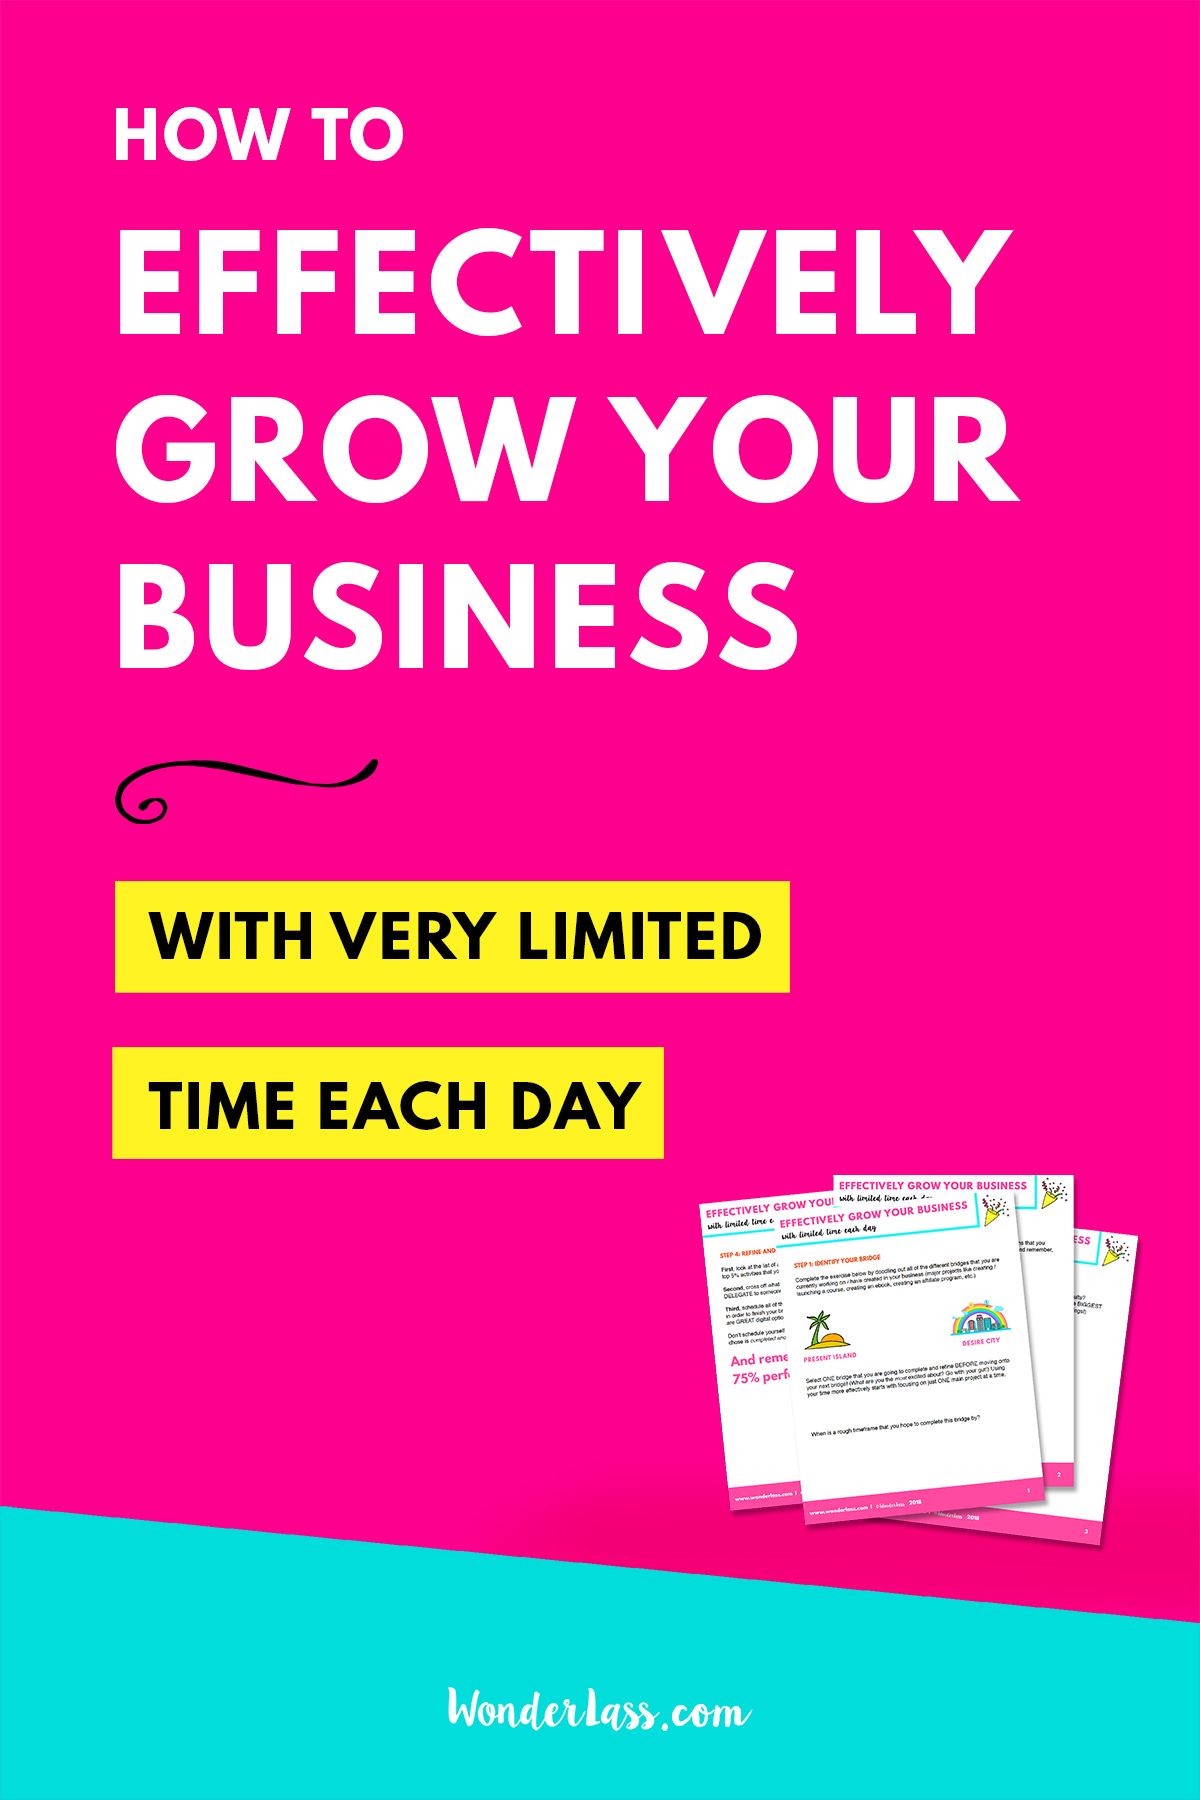 How to effectively grow your business with very limited time each day   Work SMARTER not harder!  Check out this short, actionable blog post + video to learn 6 simple steps that you can take TODAY to start seeing more progress and better results in your online business when you only have small amounts of time each day to work on it!  #goalsetting #productivitytips #todolist #savetime #businessplanning